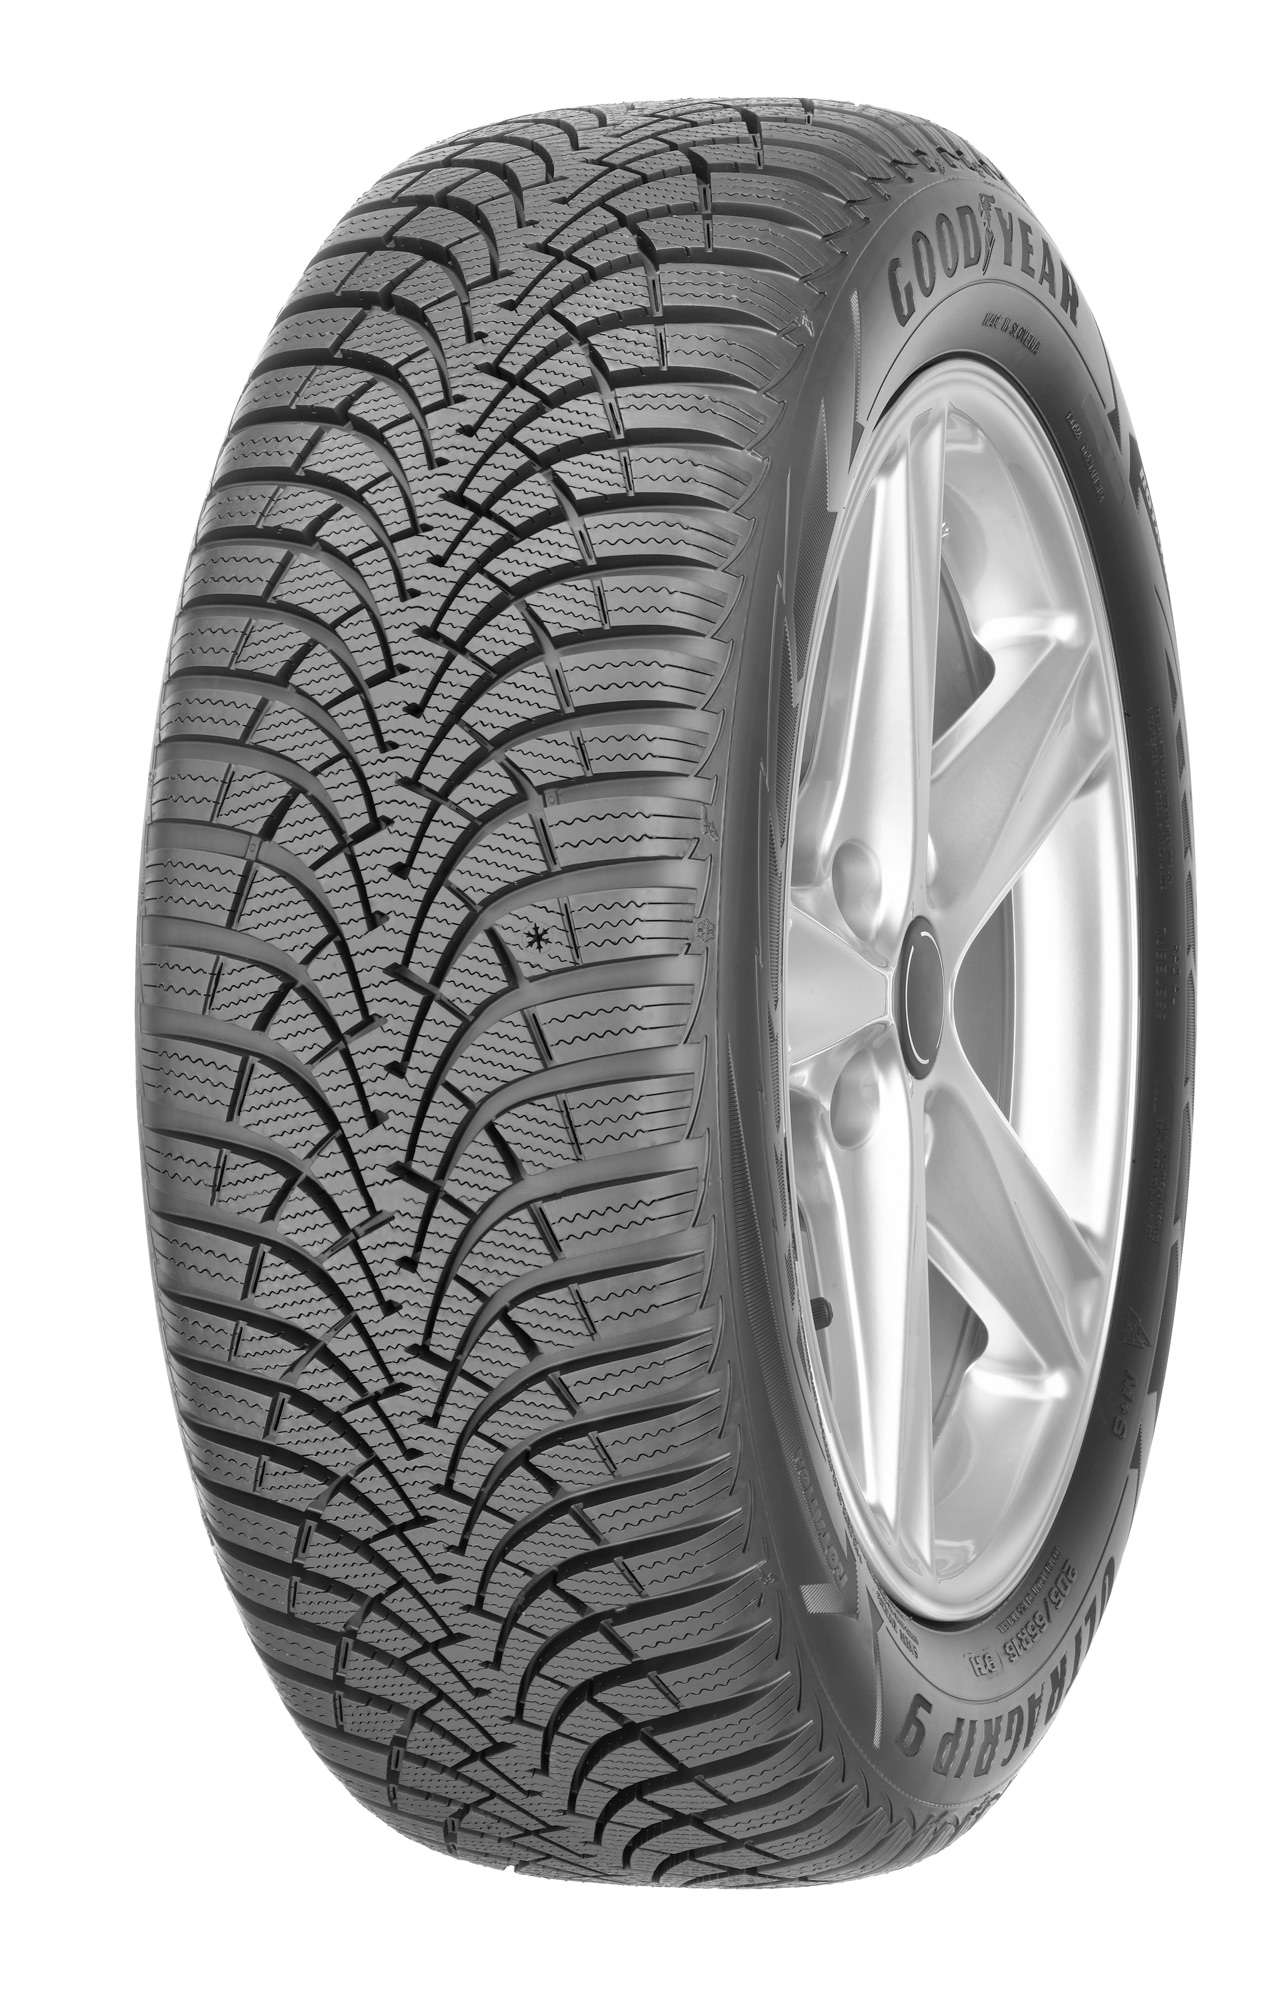 Шины - GoodYear Ultra Grip 9